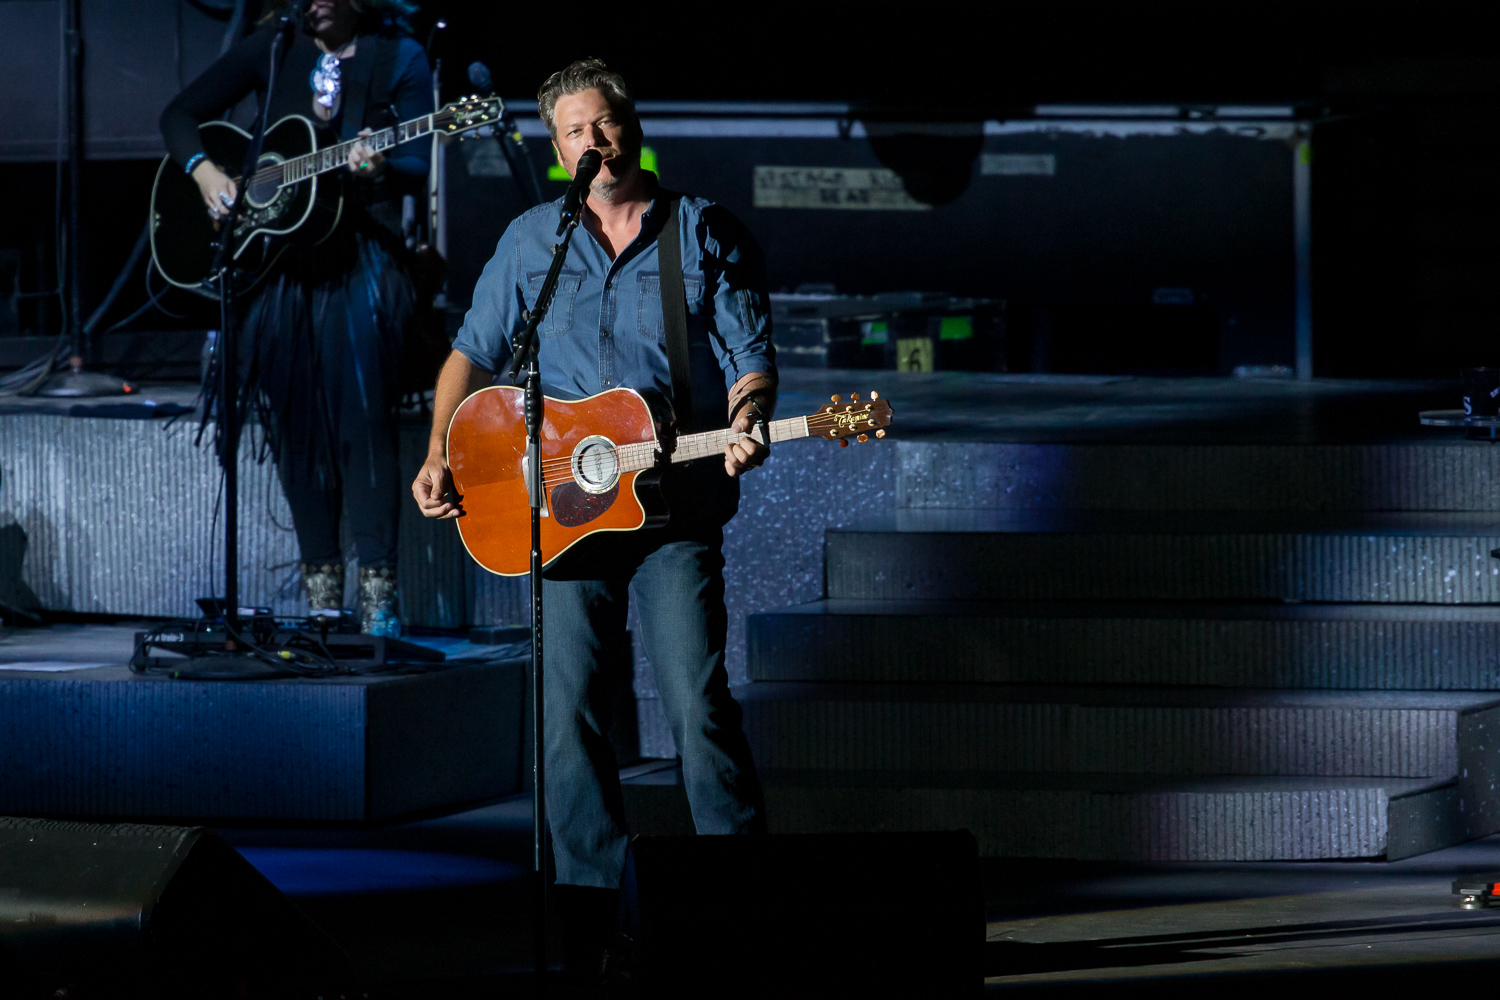 Blake Shelton at the Watershed Music Festival 2018 at The Gorge Amphitheatre. (Photo by David Conger / davidconger.com)